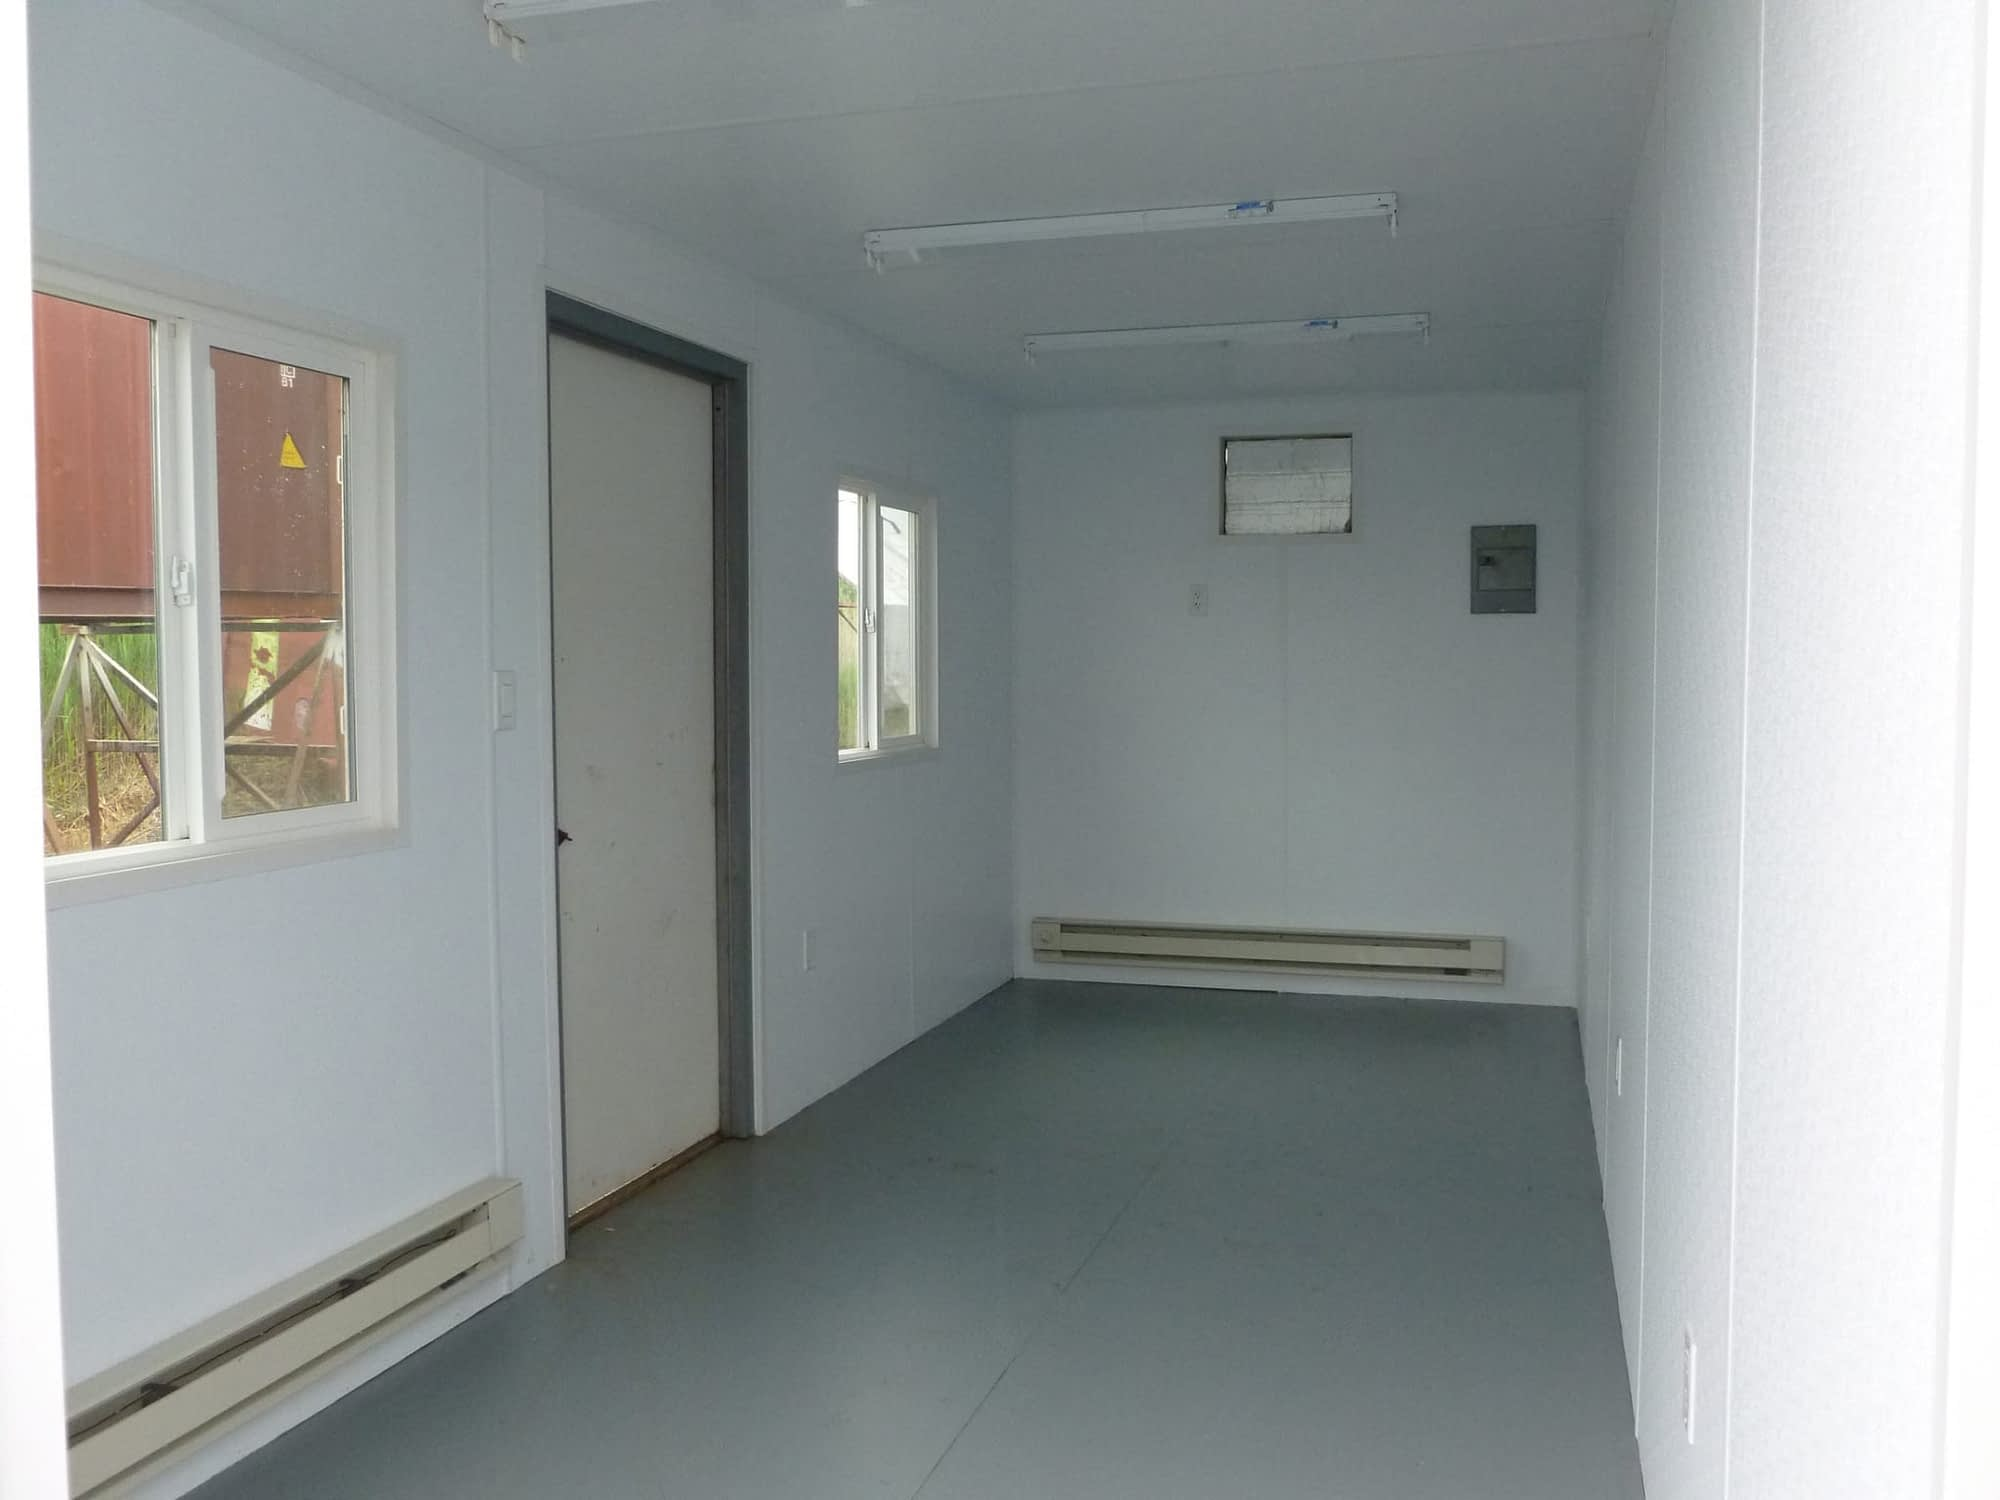 TRS Model 5 office with baseboard heating and painted plywood